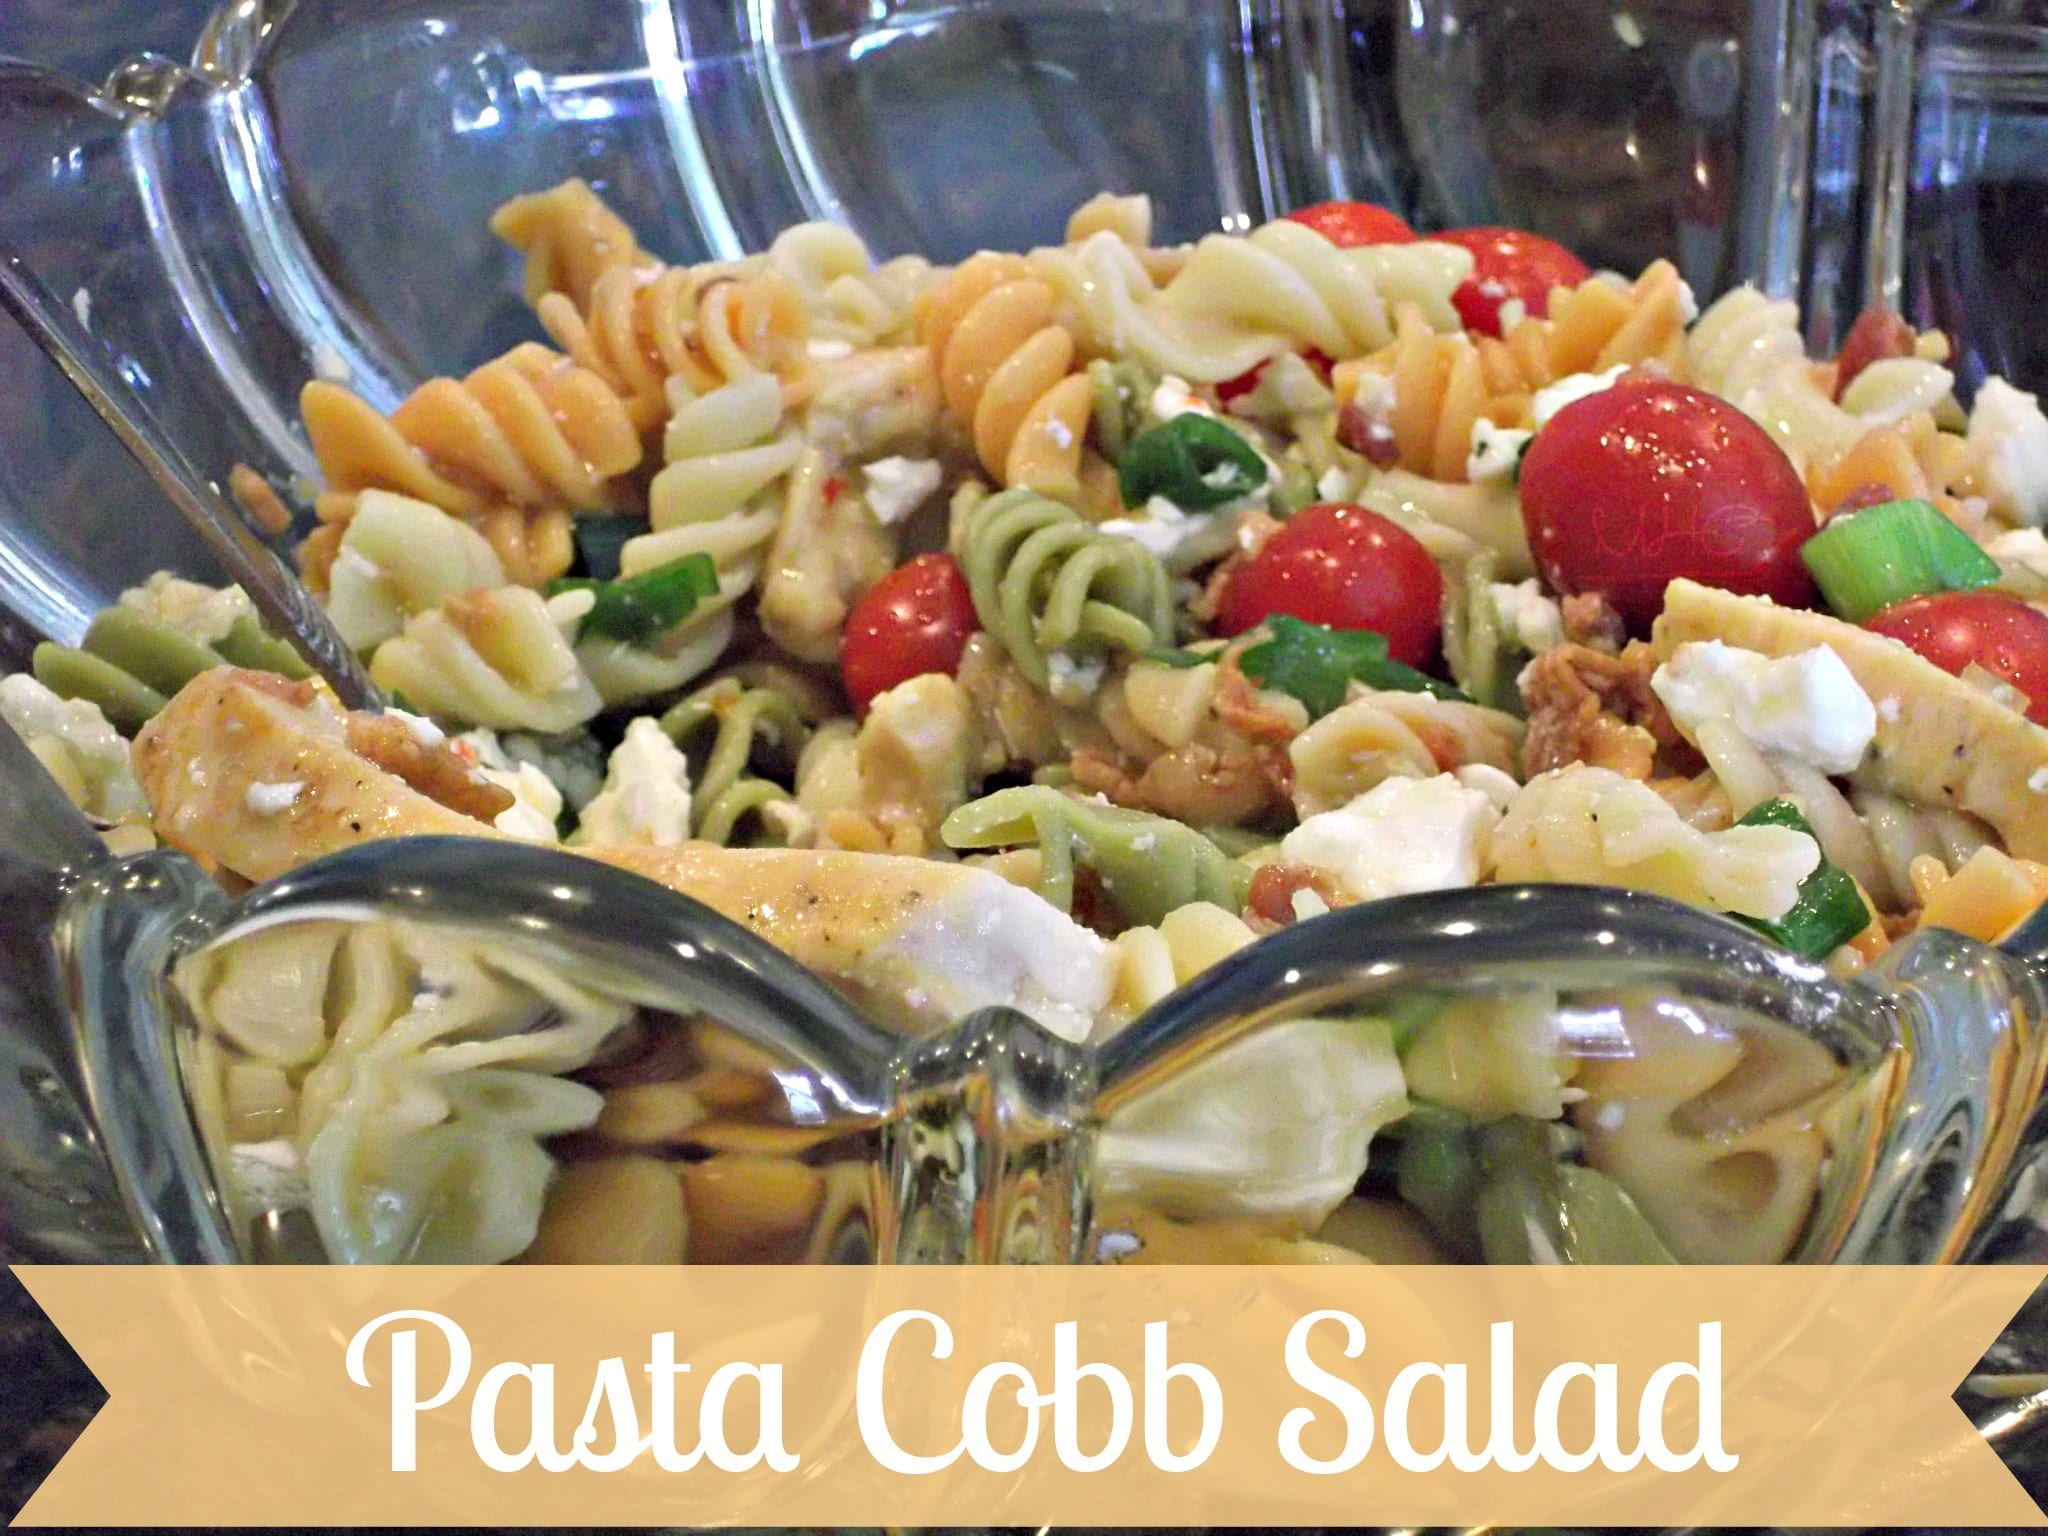 ... for this Crowd Pleasing Pasta Cobb Salad at www.mrshinesclass.com